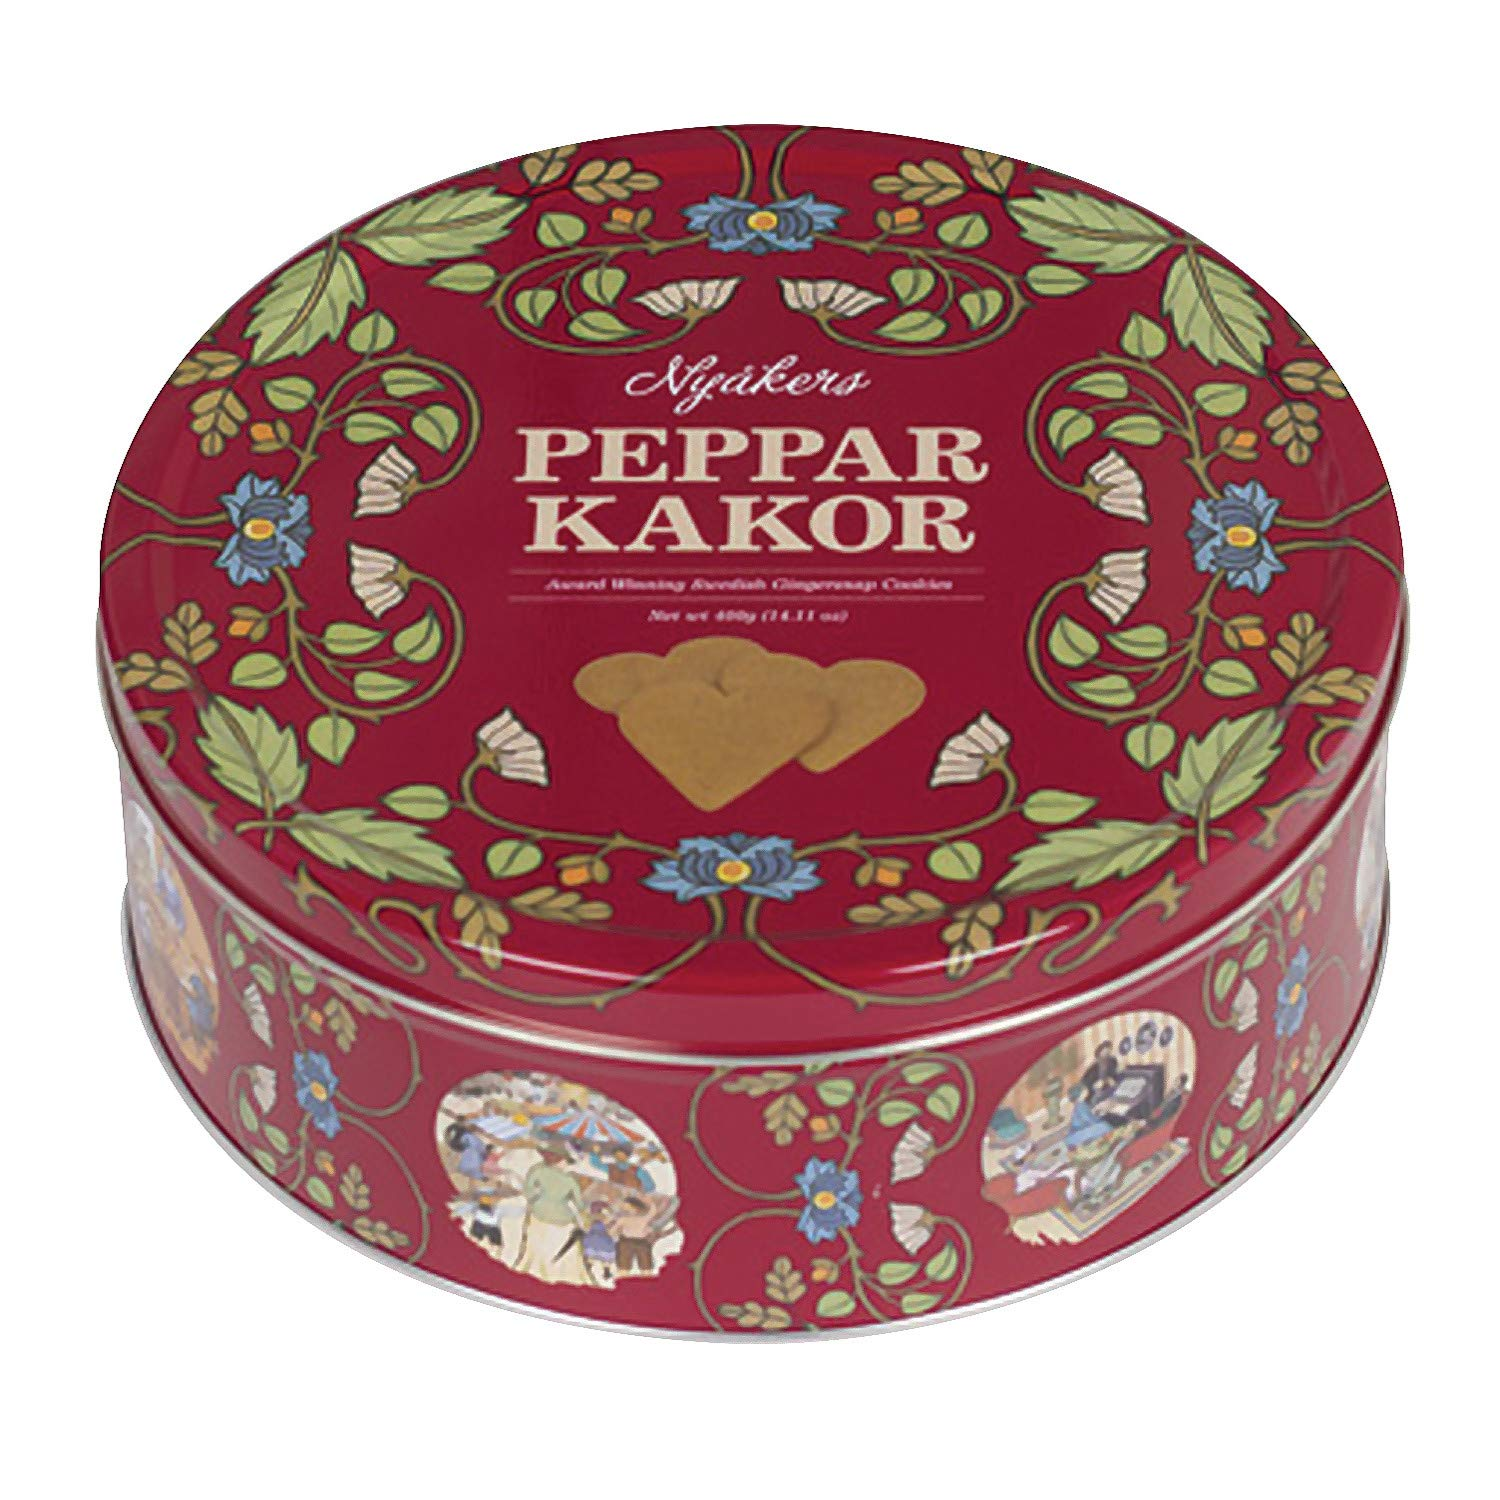 Nyakers Pepperkakor ginger heart shaped Swedish cookies in Carl Larsson collectible round tin. #swedishcookies